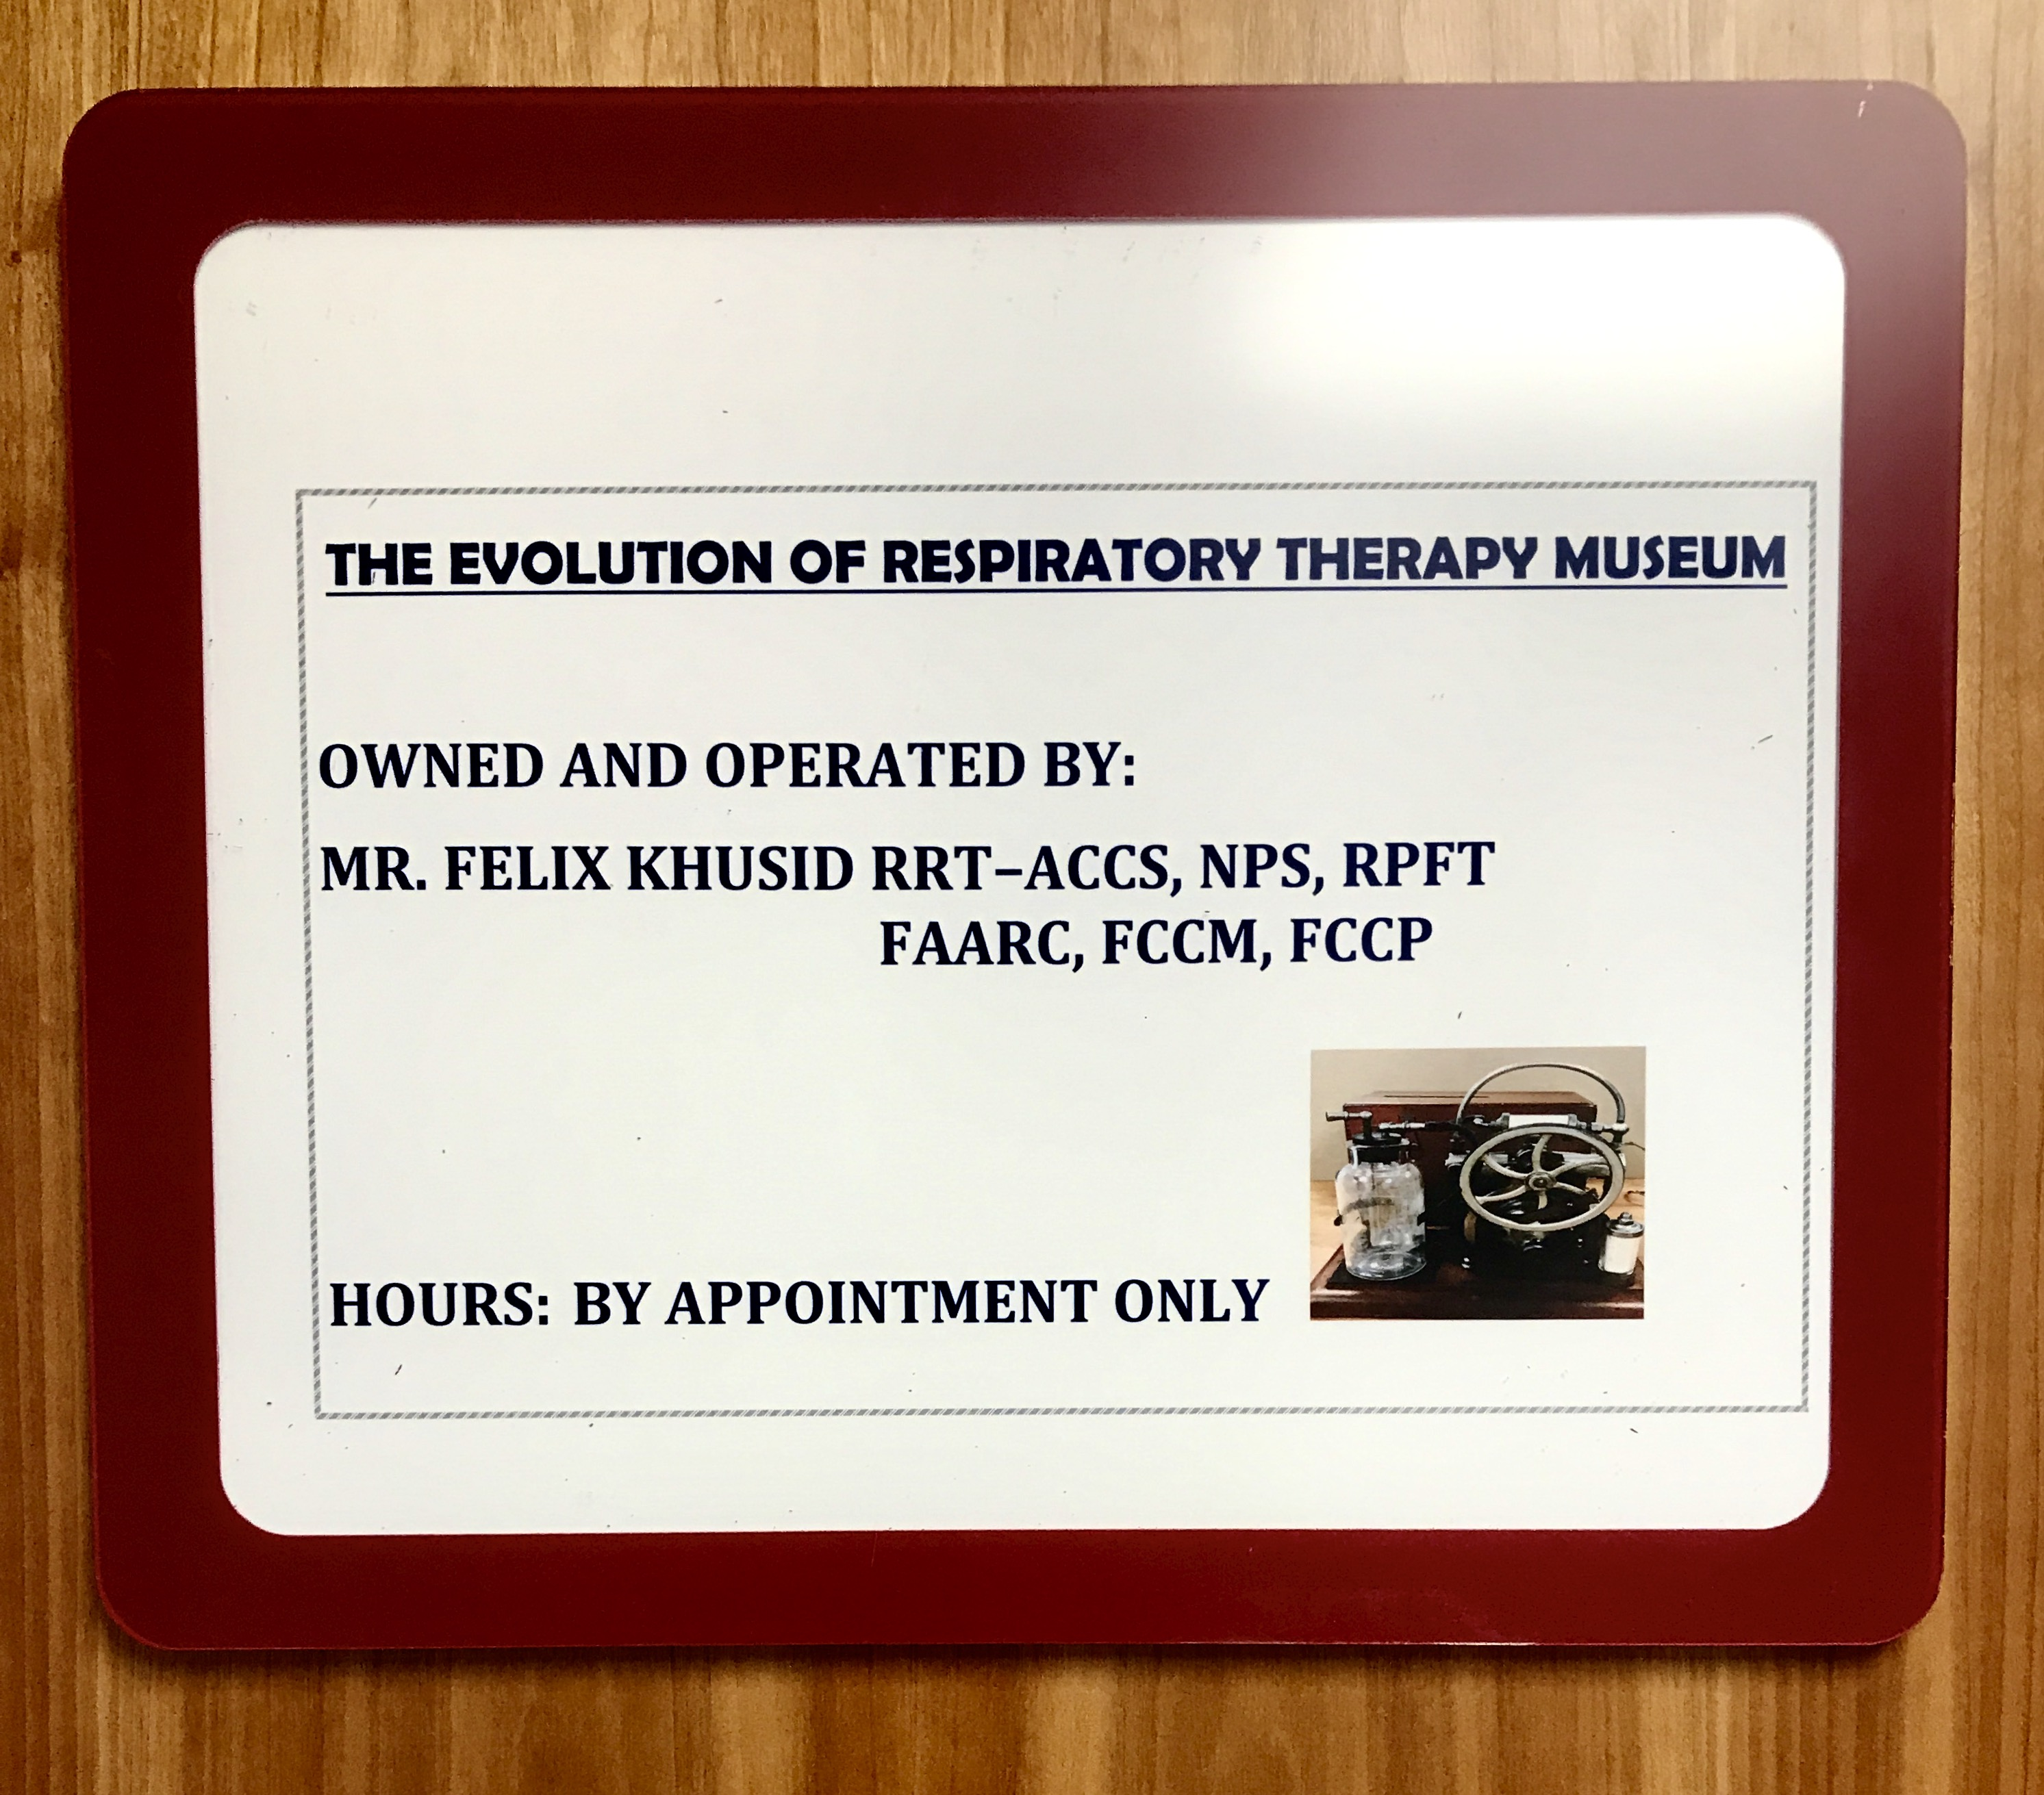 The Evolution of Respiratory Therapy Museum